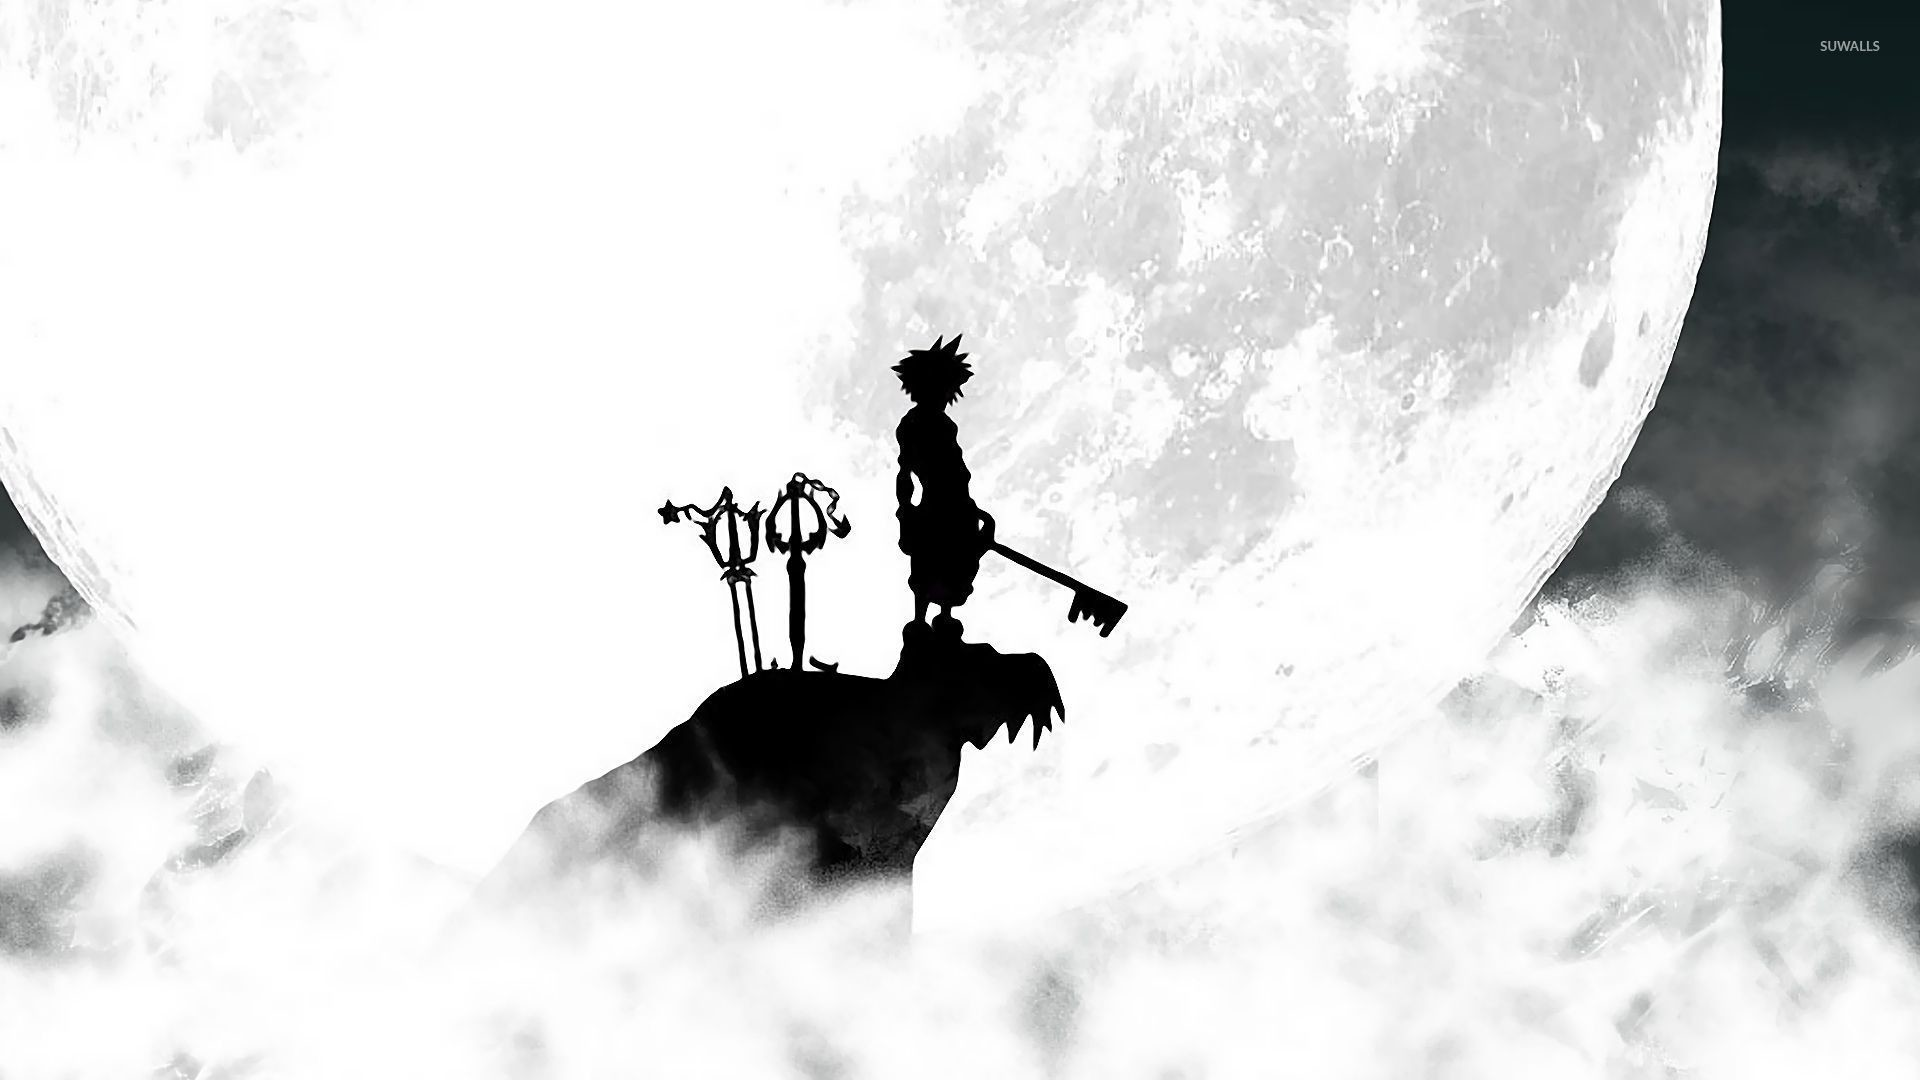 1920x1080 ... Kingdom Hearts 3 Warrior On The Cliff Wallpaper. Download